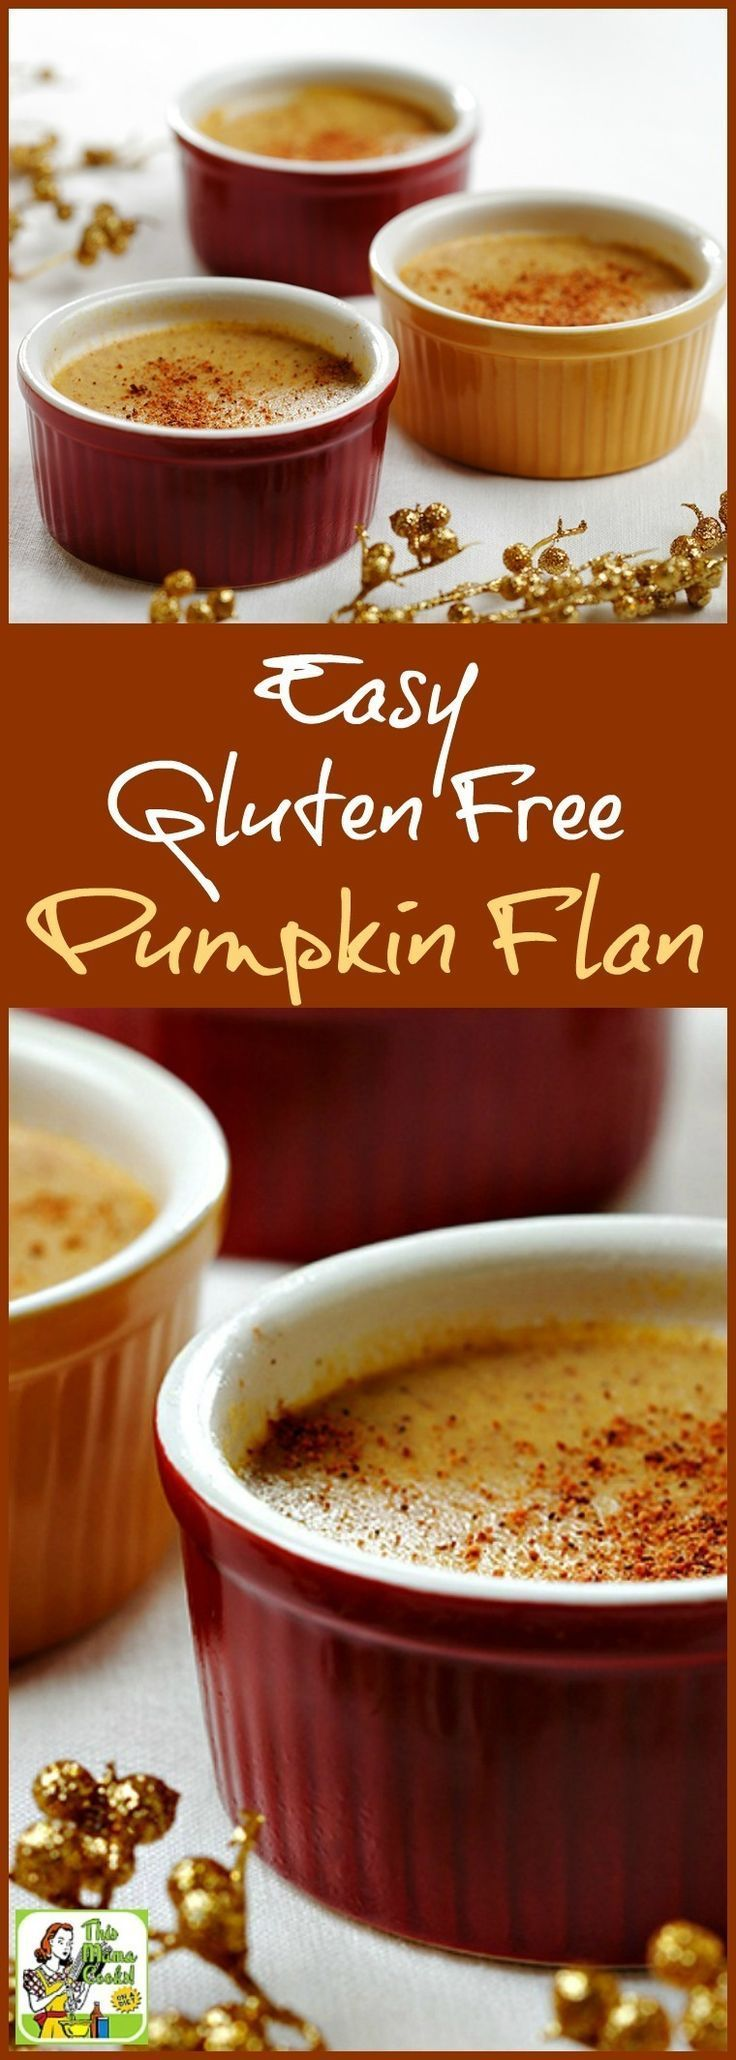 This Easy Gluten Free Pumpkin Flan can be made dairy free. Click to try this easy pumpkin dessert recipe for Thanksgiving.